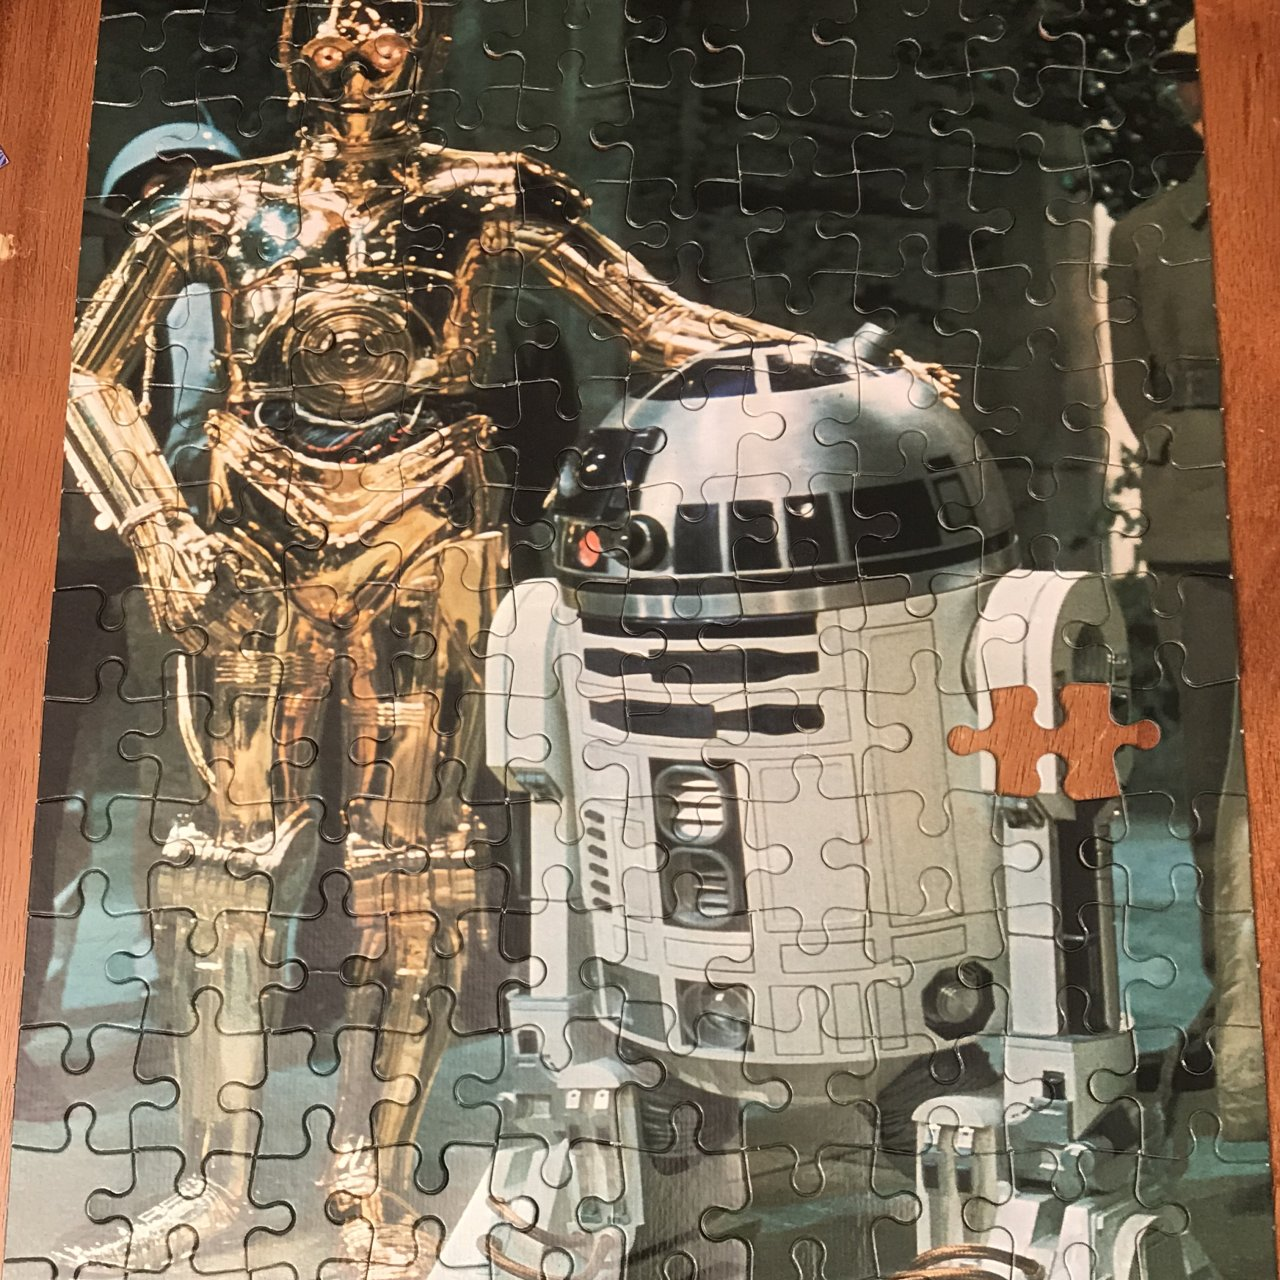 2 x Vintage STAR WARS 1977 R2-D2  & C-3PO (ARTOO-DETOO/SEE-THREE PIO) and Han & Chewbacca Jigsaw Puzzles 140 Piece Puzzles - See Description